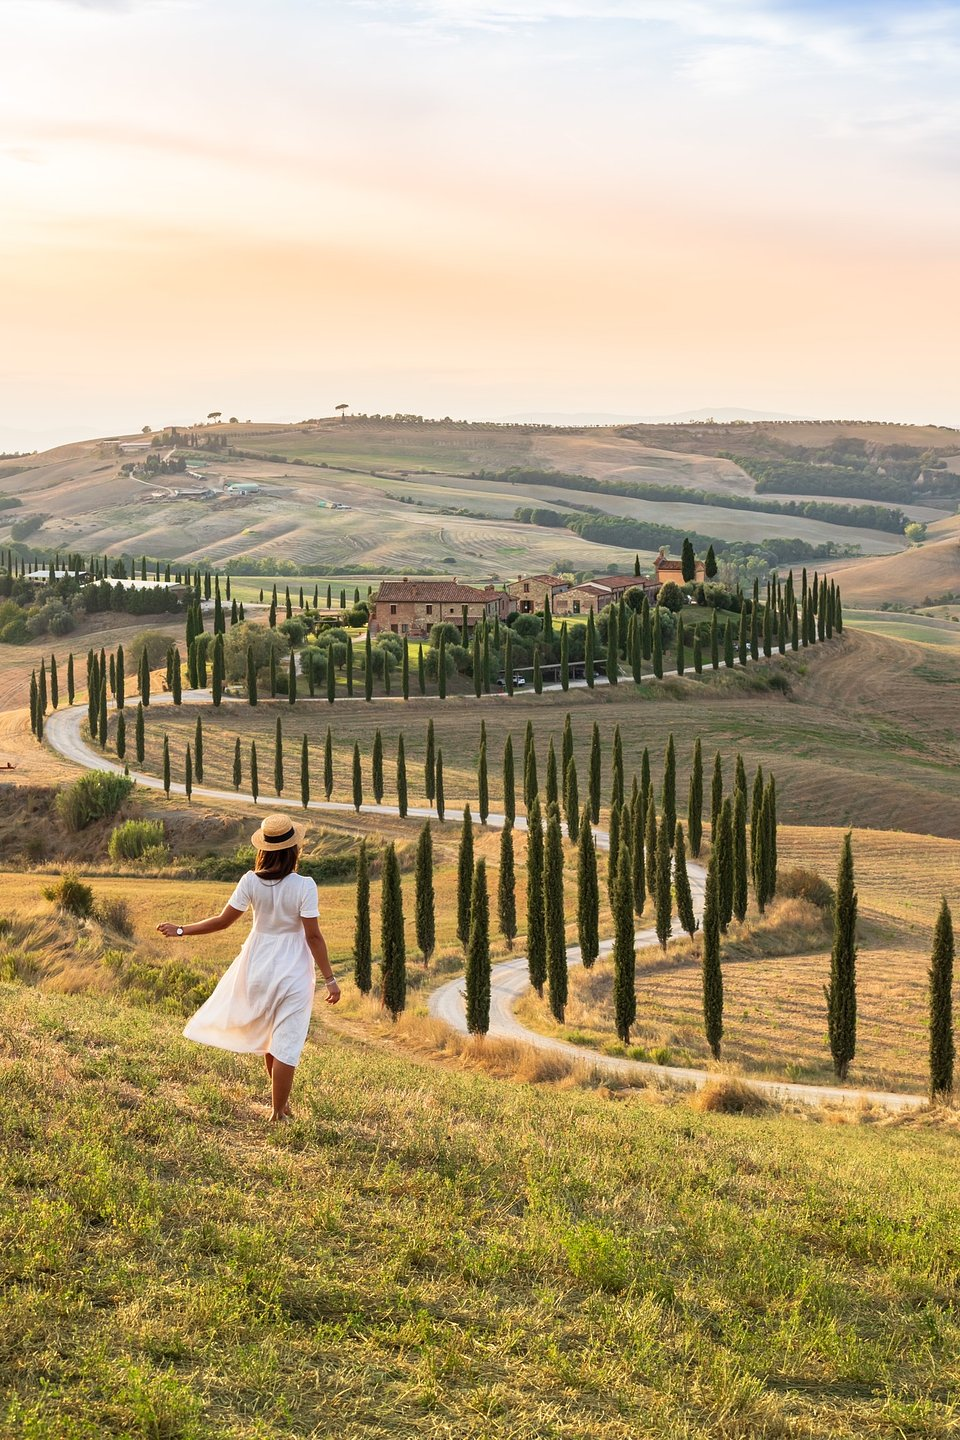 Location: Crete Senesi, Italy